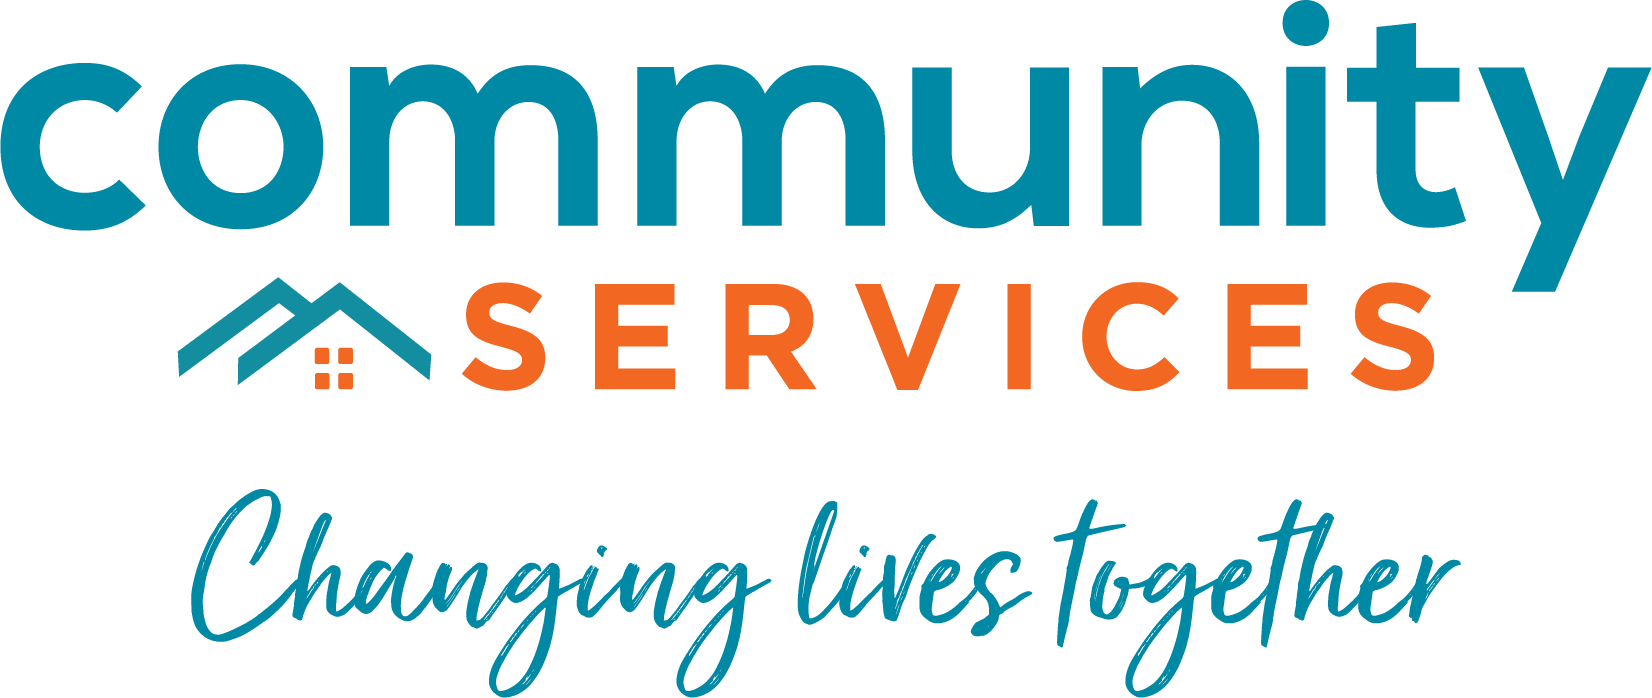 CommunityServices_logo.png